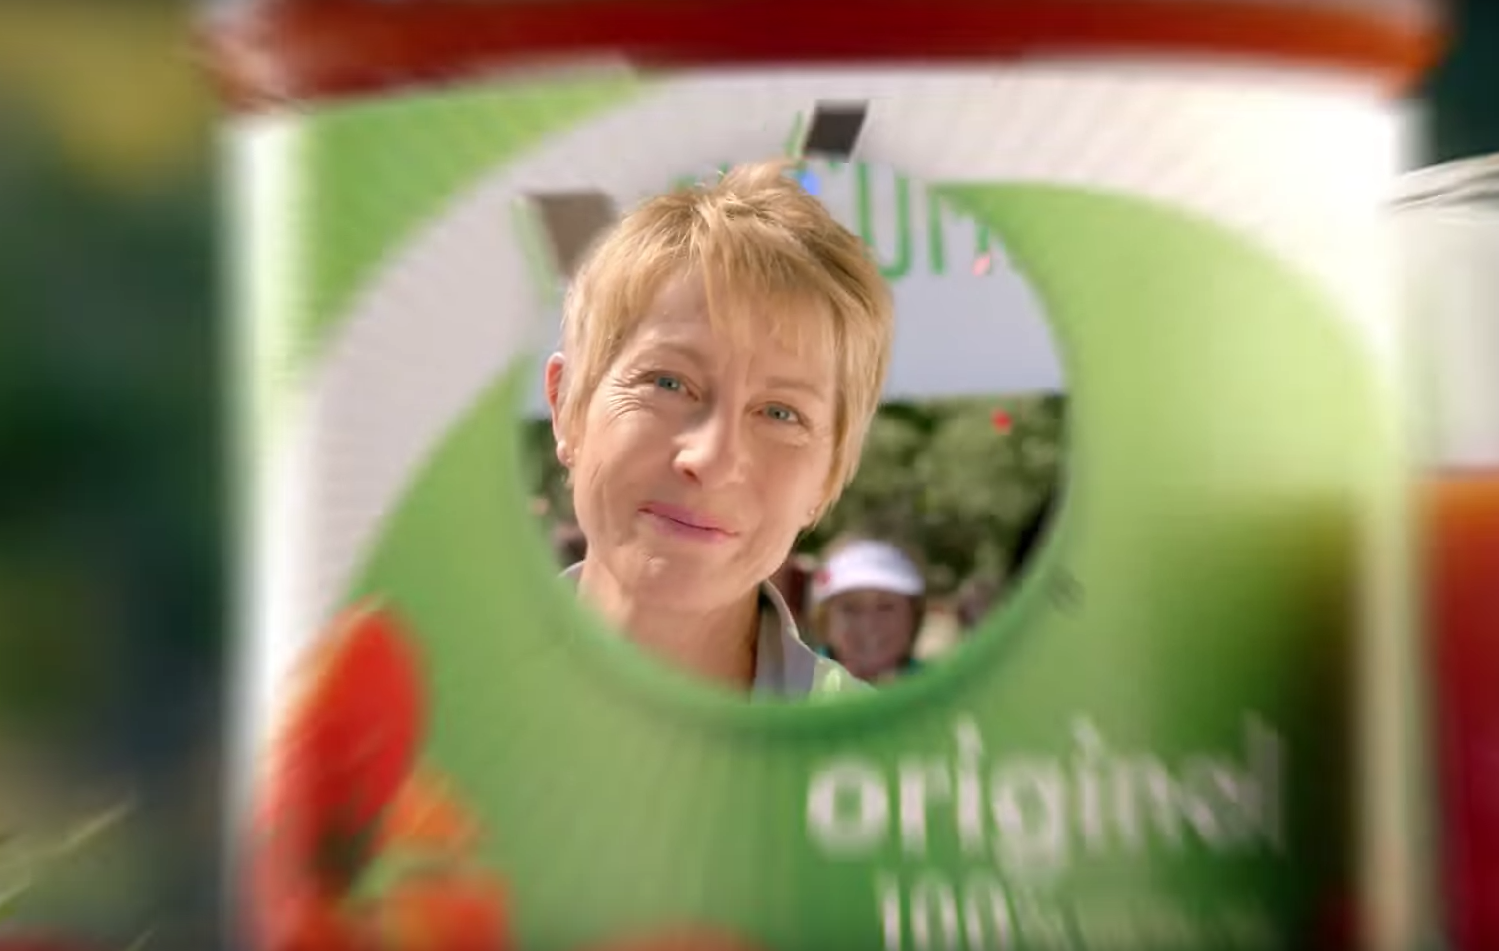 """This actor's wrinkles made me think, """"Cool! A spot that presents a savvy, attractive woman, without trying to mask the fact that she's at least 50. But on repeated viewings, I realized Campbell's V8 commercial was guilty of reverse ageism."""